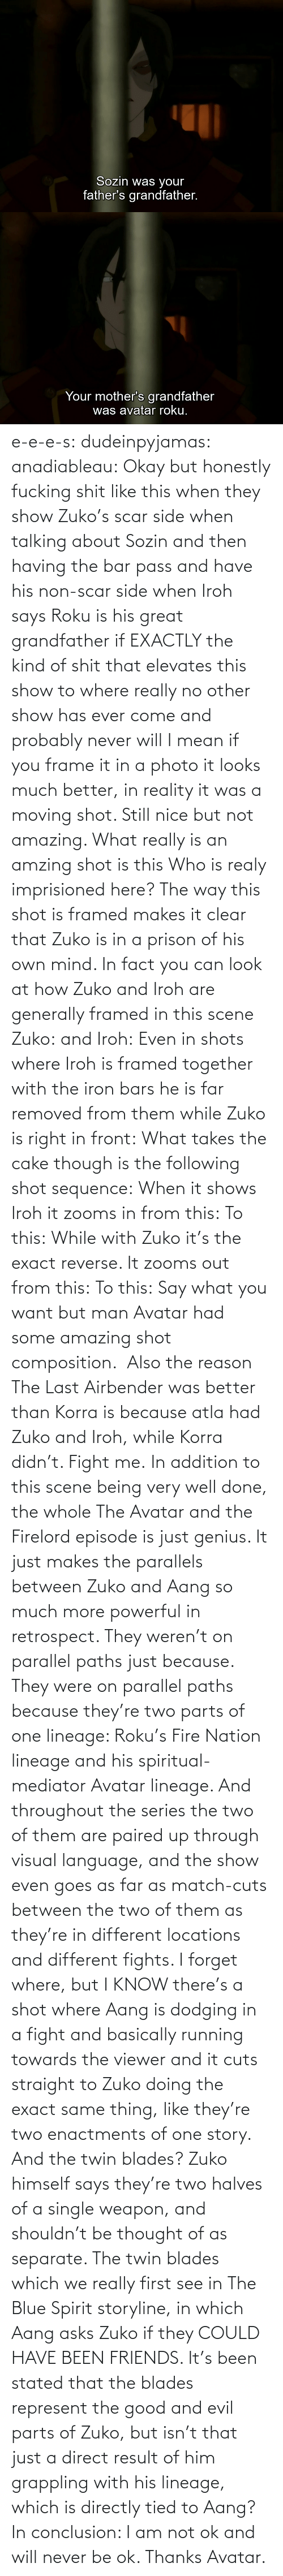 Goes: e-e-e-s: dudeinpyjamas:   anadiableau: Okay but honestly fucking shit like this when they show Zuko's scar side when talking about Sozin and then having the bar pass and have his non-scar side when Iroh says Roku is his great grandfather if EXACTLY the kind of shit that elevates this show to where really no other show has ever come and probably never will I mean if you frame it in a photo it looks much better, in reality it was a moving shot. Still nice but not amazing. What really is an amzing shot is this Who is realy imprisioned here? The way this shot is framed makes it clear that Zuko is in a prison of his own mind. In fact you can look at how Zuko and Iroh are generally framed in this scene Zuko: and Iroh: Even in shots where Iroh is framed together with the iron bars he is far removed from them while Zuko is right in front:  What takes the cake though is the following shot sequence: When it shows Iroh it zooms in from this: To this: While with Zuko it's the exact reverse. It zooms out from this: To this: Say what you want but man Avatar had some amazing shot composition.   Also the reason The Last Airbender was better than Korra is because atla had Zuko and Iroh, while Korra didn't. Fight me.    In addition to this scene being very well done, the whole The Avatar and the Firelord episode is just genius.  It just makes the parallels between Zuko and Aang so much more powerful in retrospect.  They weren't on parallel paths just because.  They were on parallel paths because they're two parts of one lineage: Roku's Fire Nation lineage and his spiritual-mediator Avatar lineage.  And throughout the series the two of them are paired up through visual language, and the show even goes as far as match-cuts between the two of them as they're in different locations and different fights.  I forget where, but I KNOW there's a shot where Aang is dodging in a fight and basically running towards the viewer and it cuts straight to Zuko doing the exact same thing, like they're two enactments of one story.   And the twin blades?  Zuko himself says they're two halves of a single weapon, and shouldn't be thought of as separate.  The twin blades which we really first see in The Blue Spirit storyline, in which Aang asks Zuko if they COULD HAVE BEEN FRIENDS.  It's been stated that the blades represent the good and evil parts of Zuko, but isn't that just a direct result of him grappling with his lineage, which is directly tied to Aang? In conclusion: I am not ok and will never be ok.  Thanks Avatar.